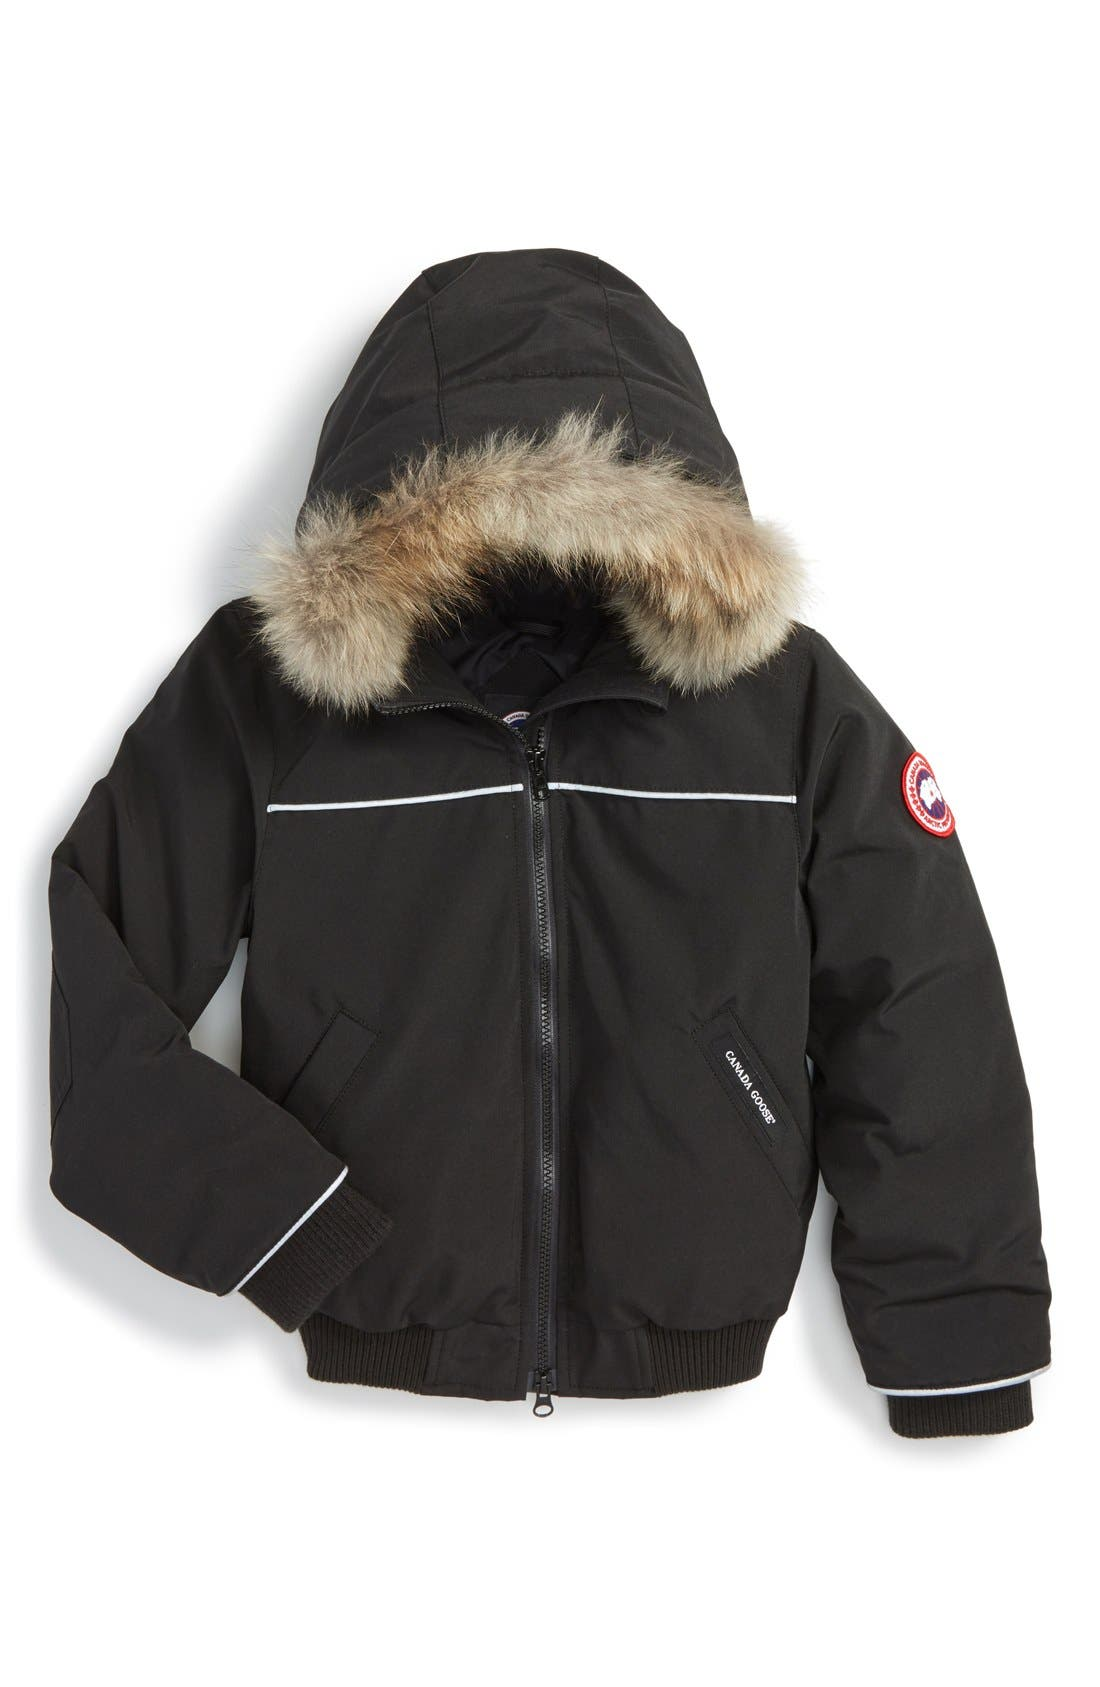 Main Image - Canada Goose 'Grizzly' Down Hooded Bomber Jacket with Genuine Coyote Fur Trim (Little Kids)